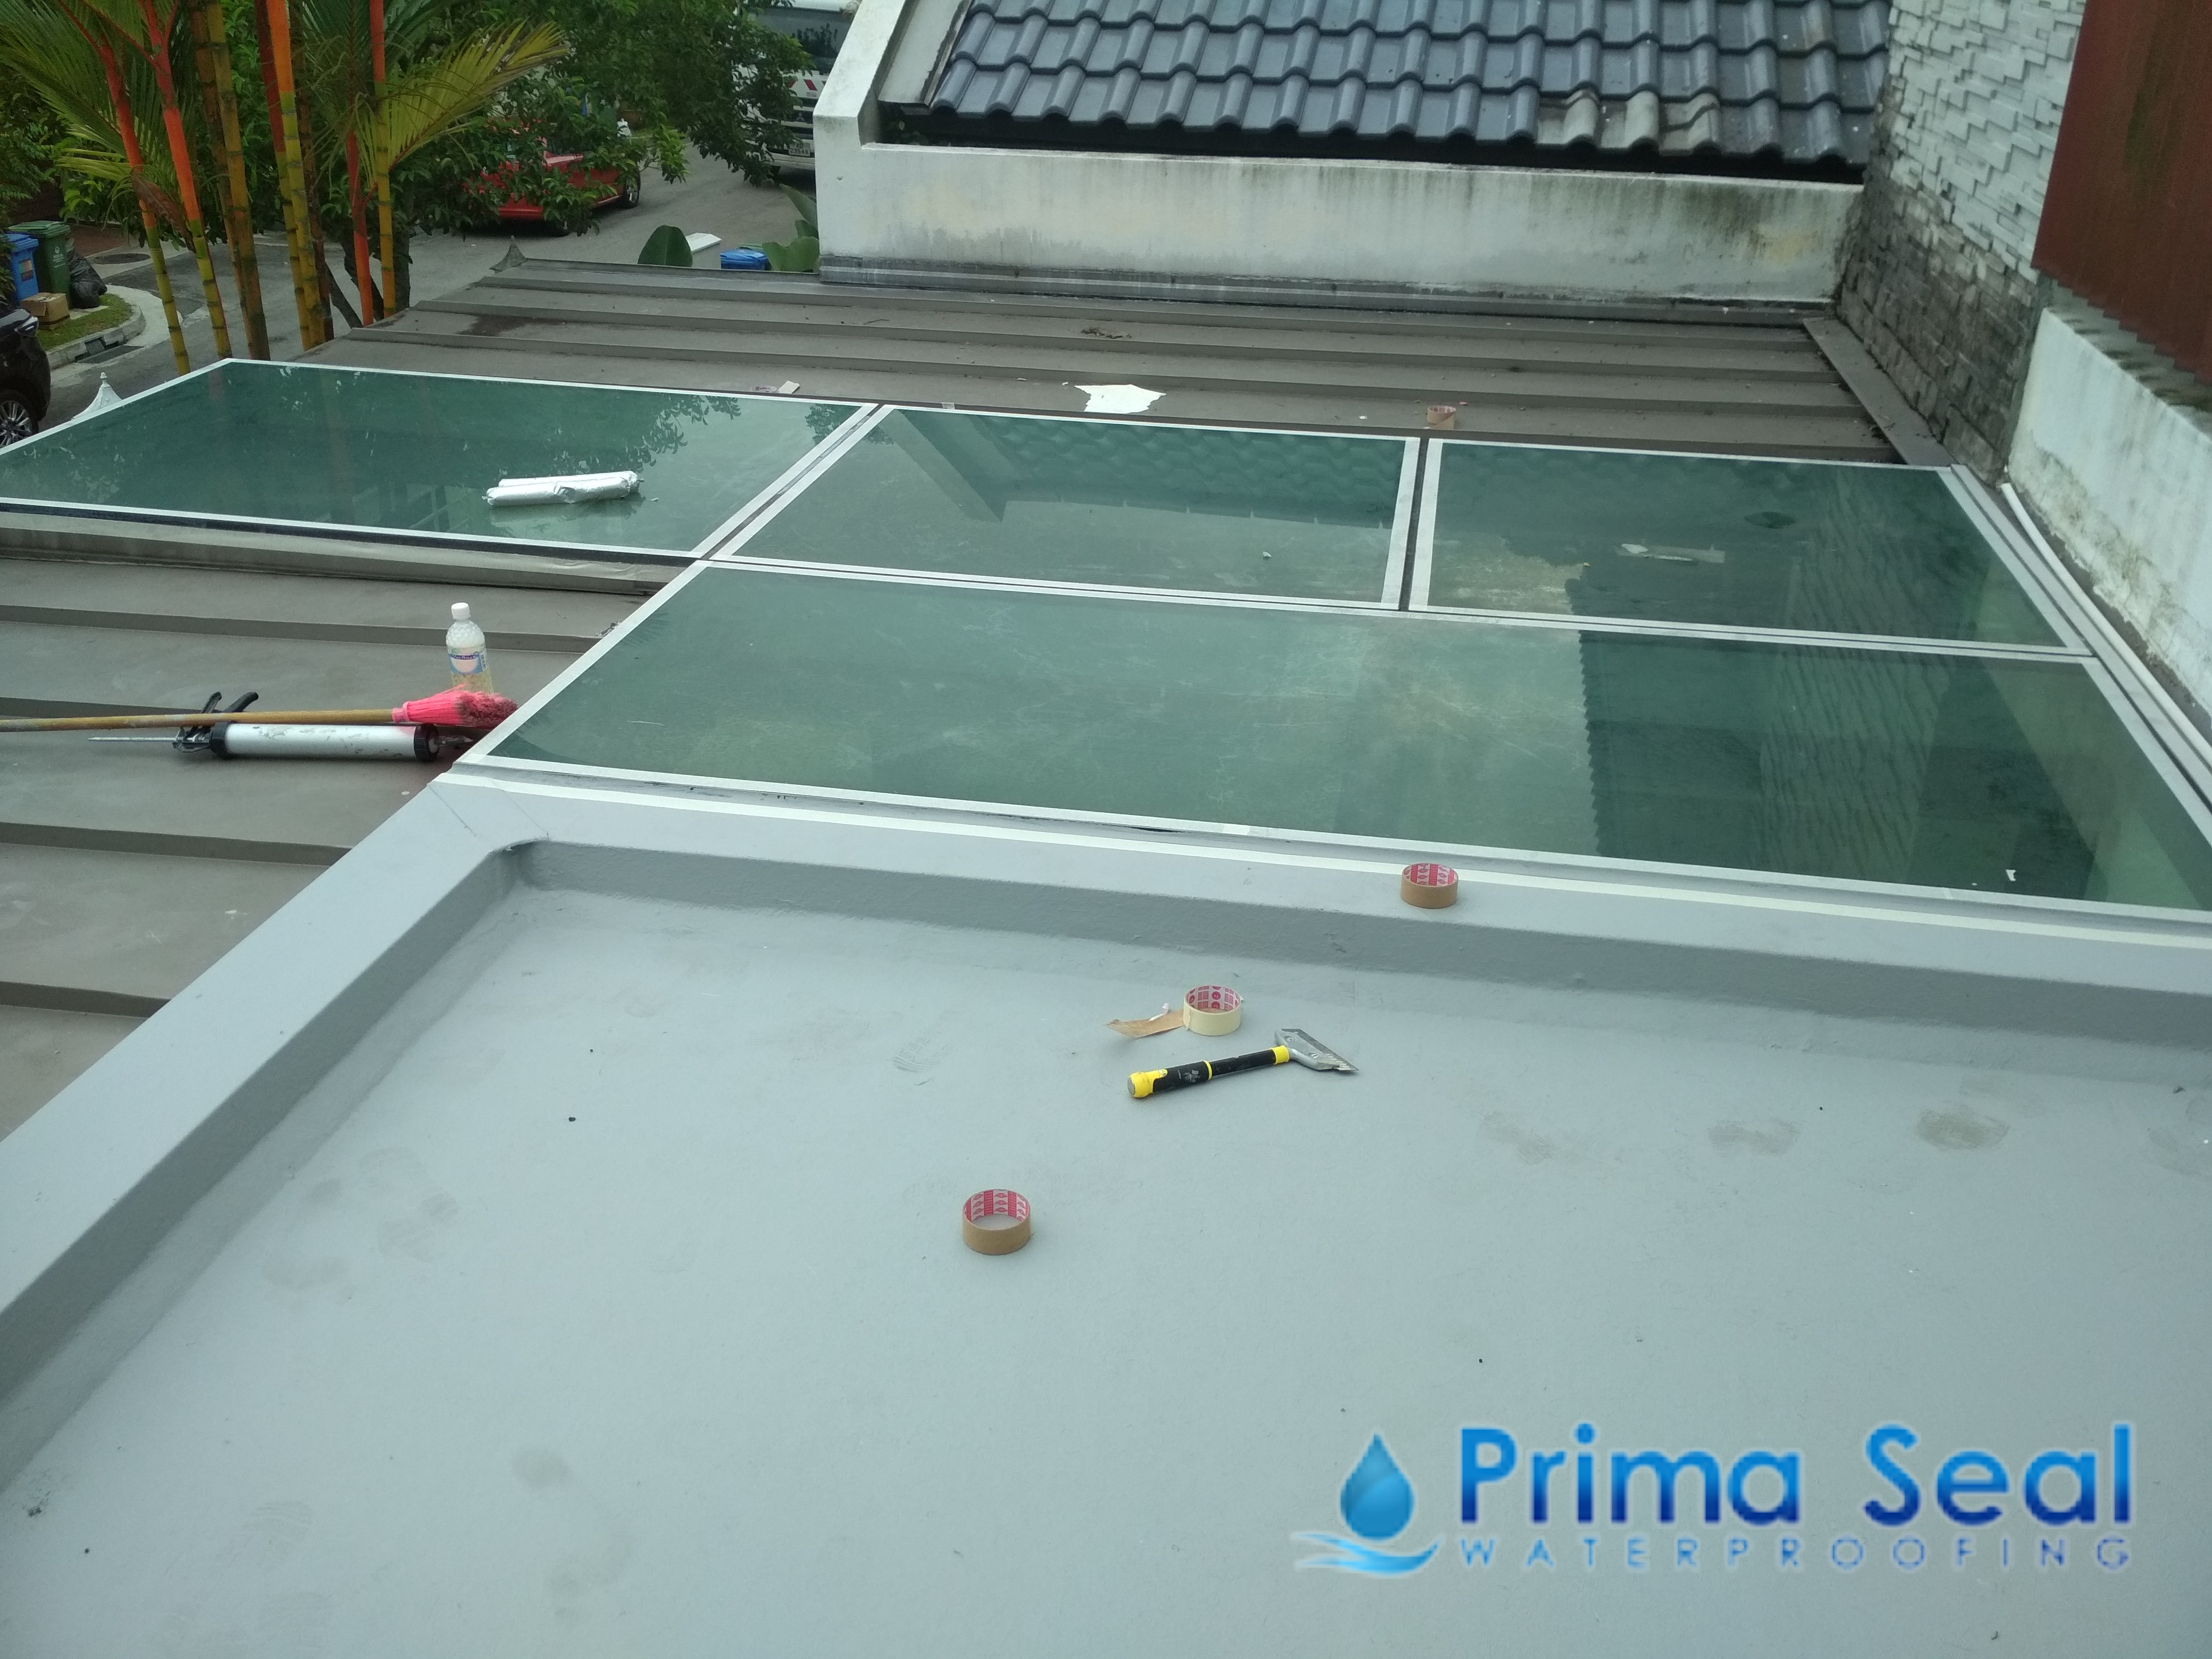 Reinforced Concrete R C  Flat Roof - Prima Seal Waterproofing Singapore